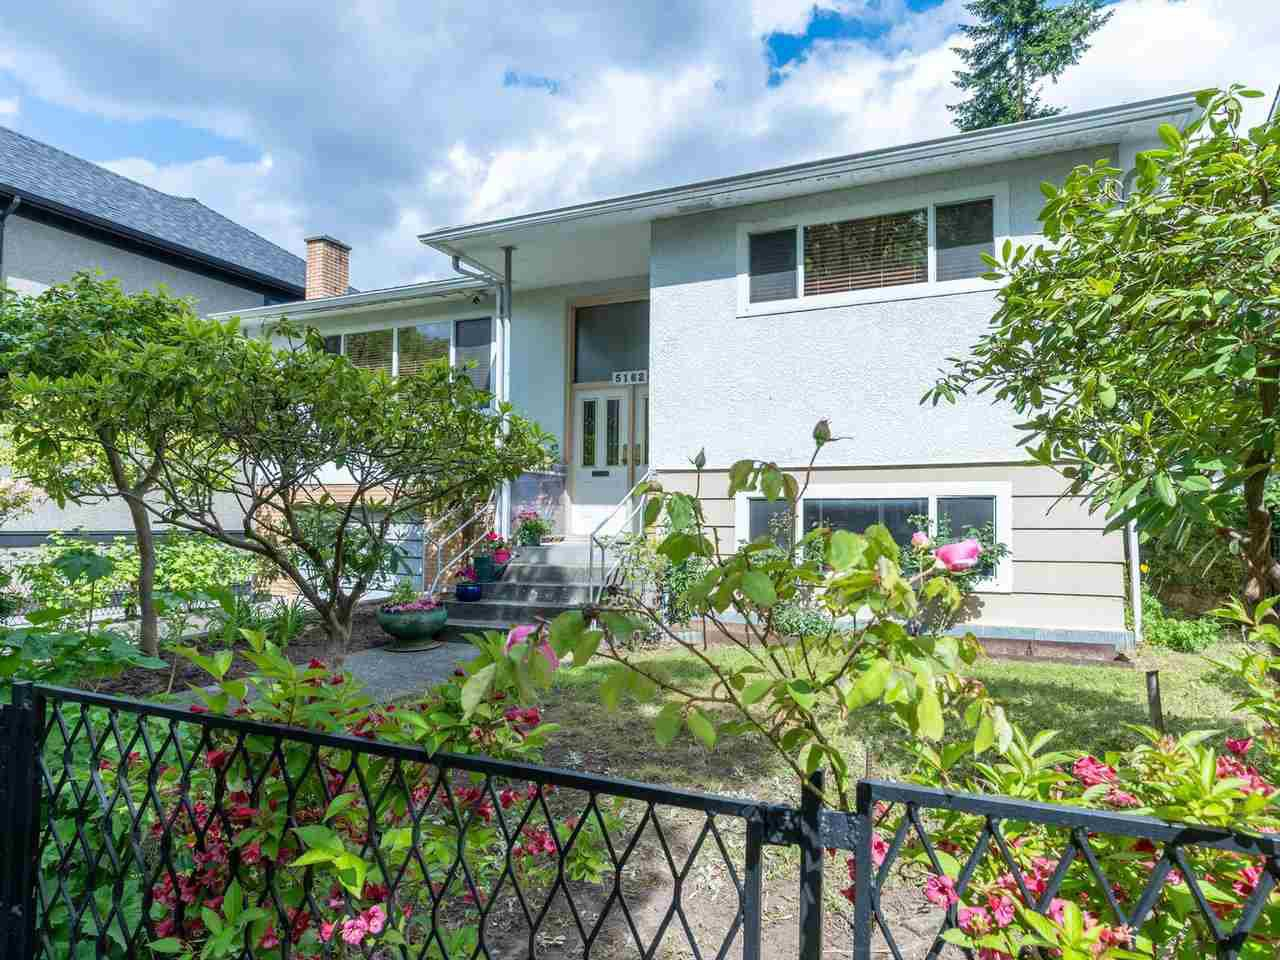 Main Photo: 5162 ELGIN Street in Vancouver: Knight House for sale (Vancouver East)  : MLS®# R2462775